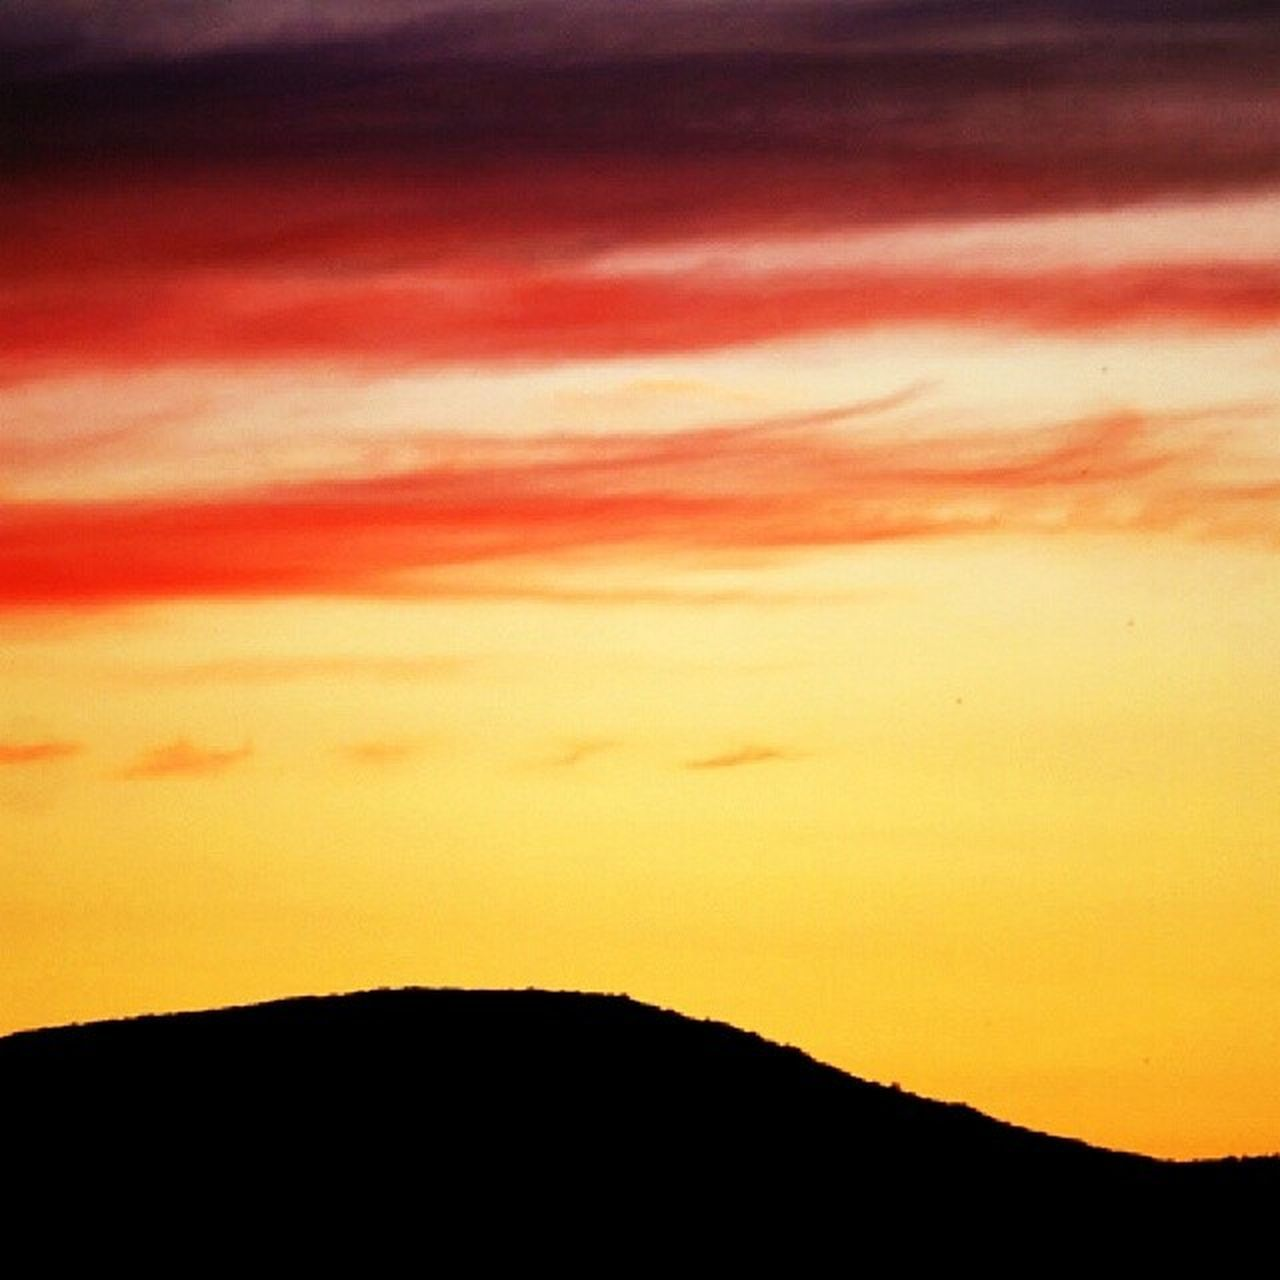 sunset, silhouette, scenics, beauty in nature, orange color, nature, sky, tranquility, no people, tranquil scene, cloud - sky, outdoors, backgrounds, yellow, day